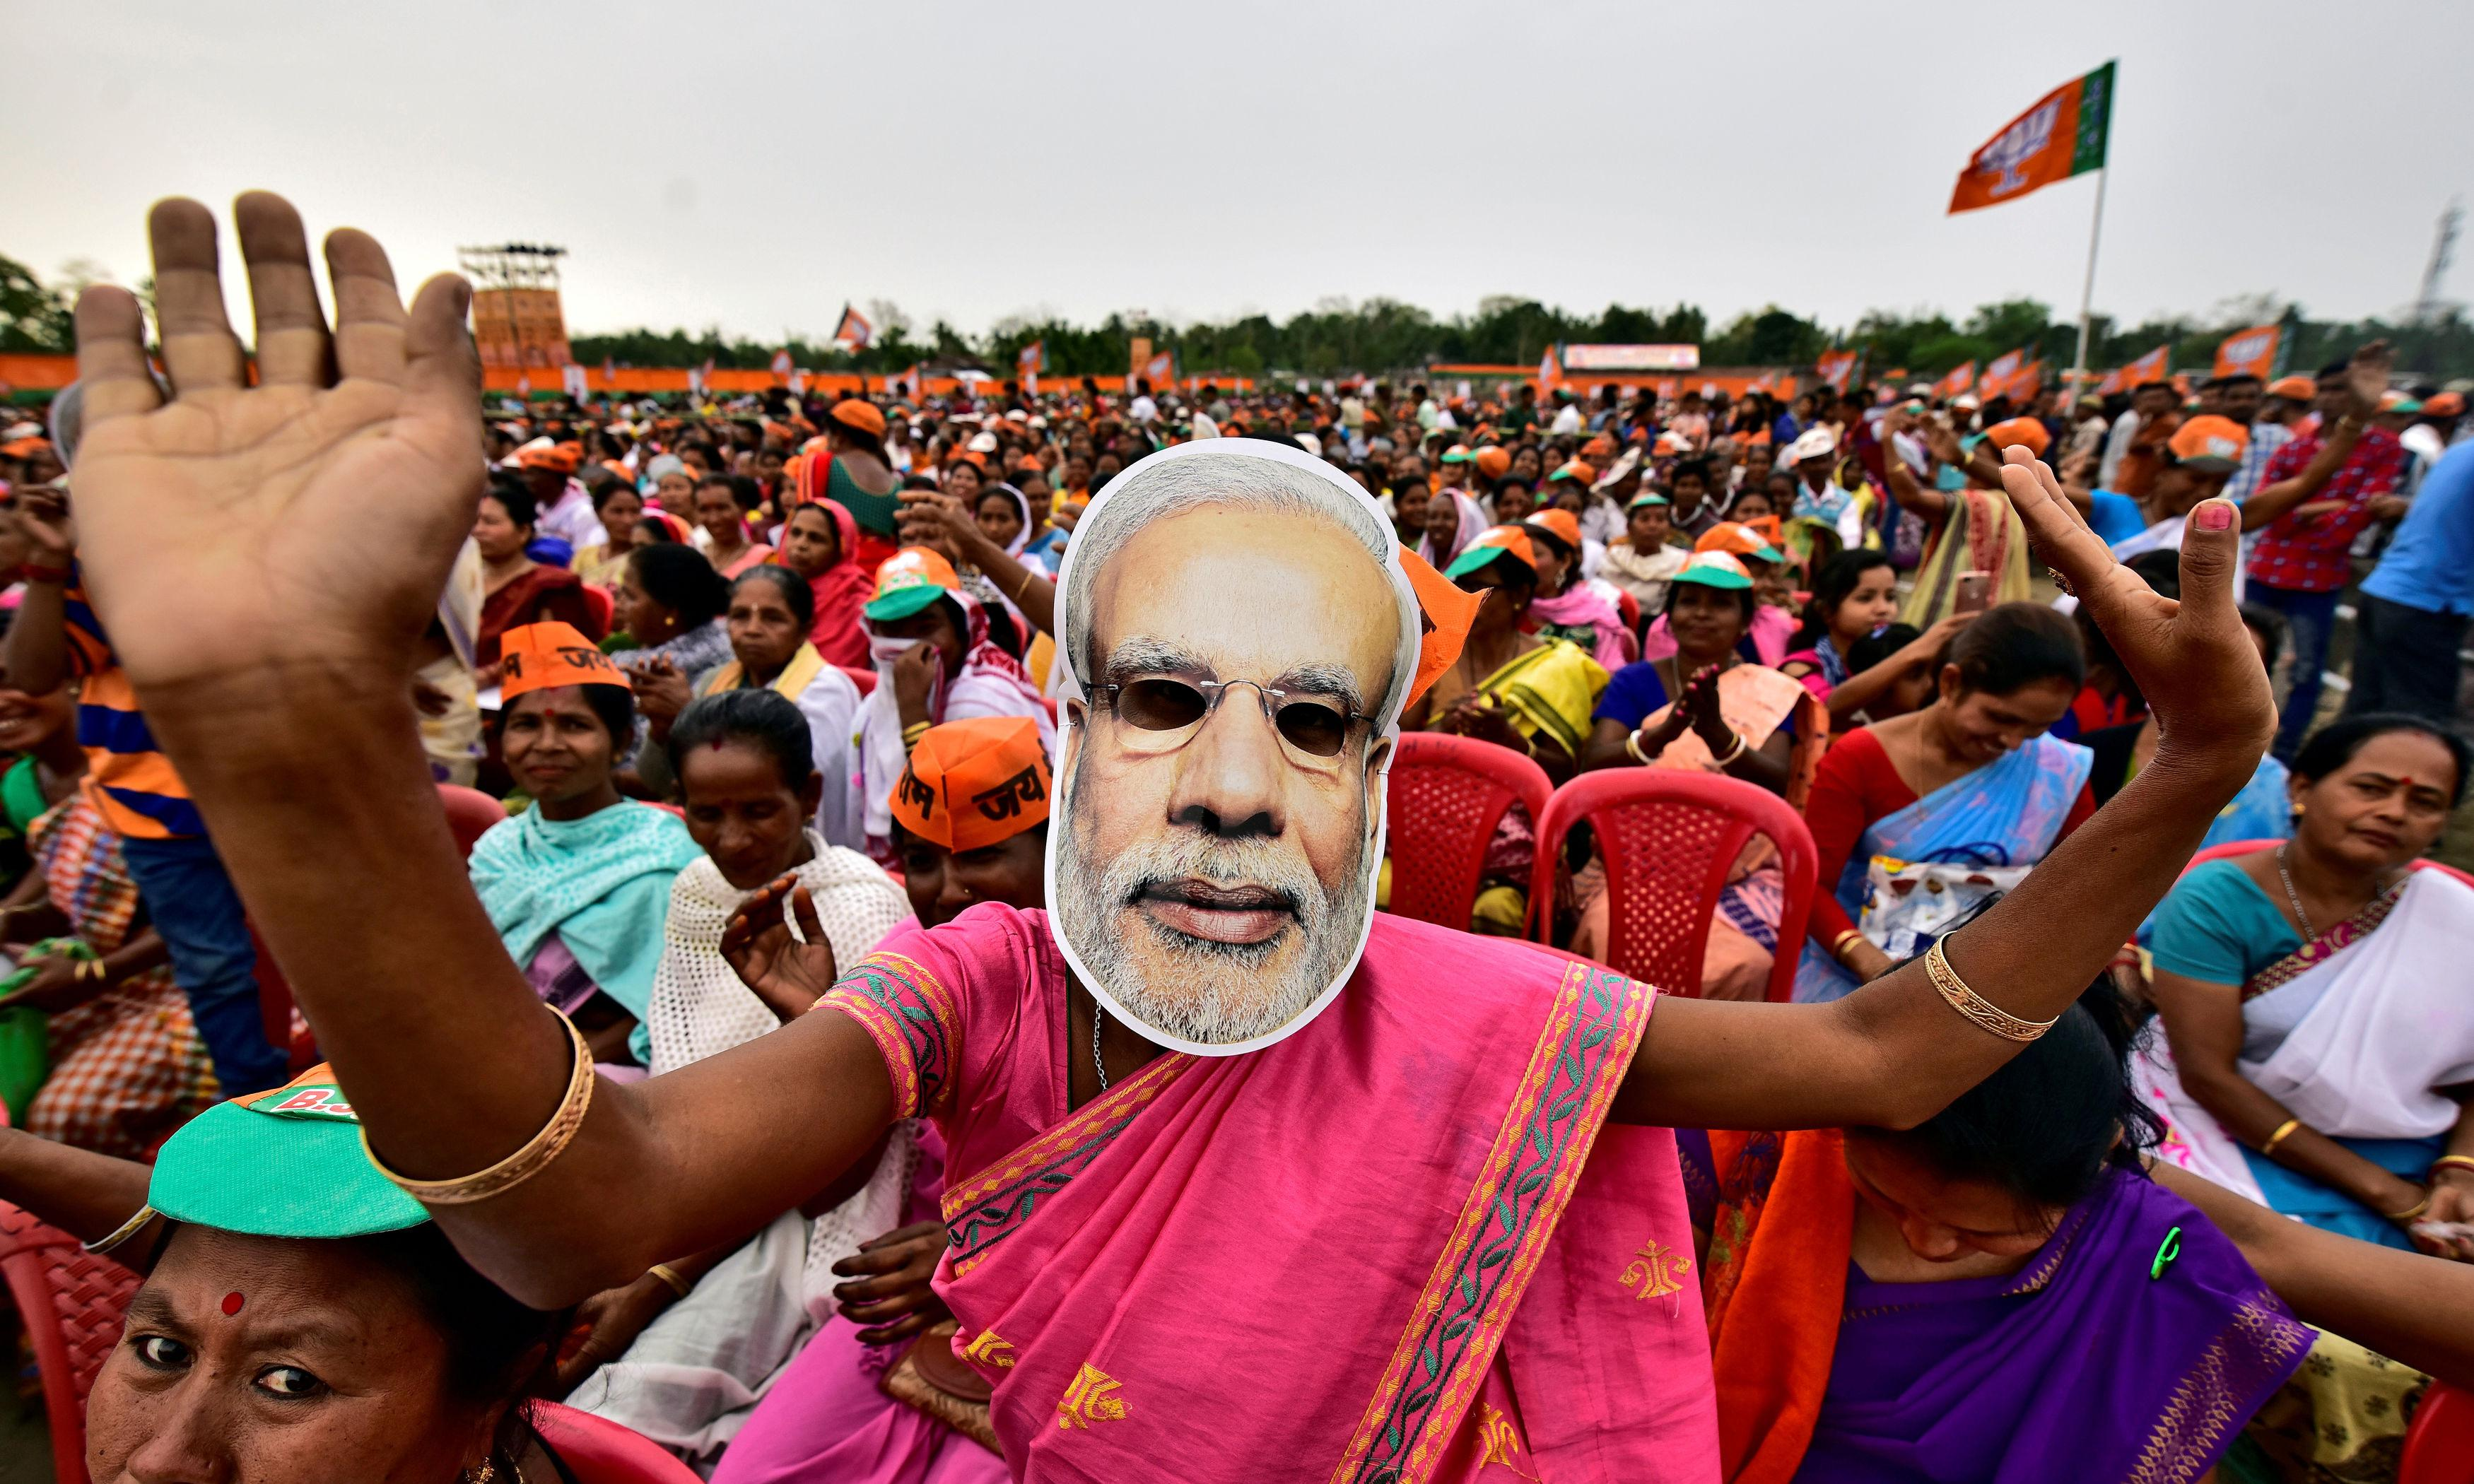 Five more years of Narendra Modi will take India to a dark place